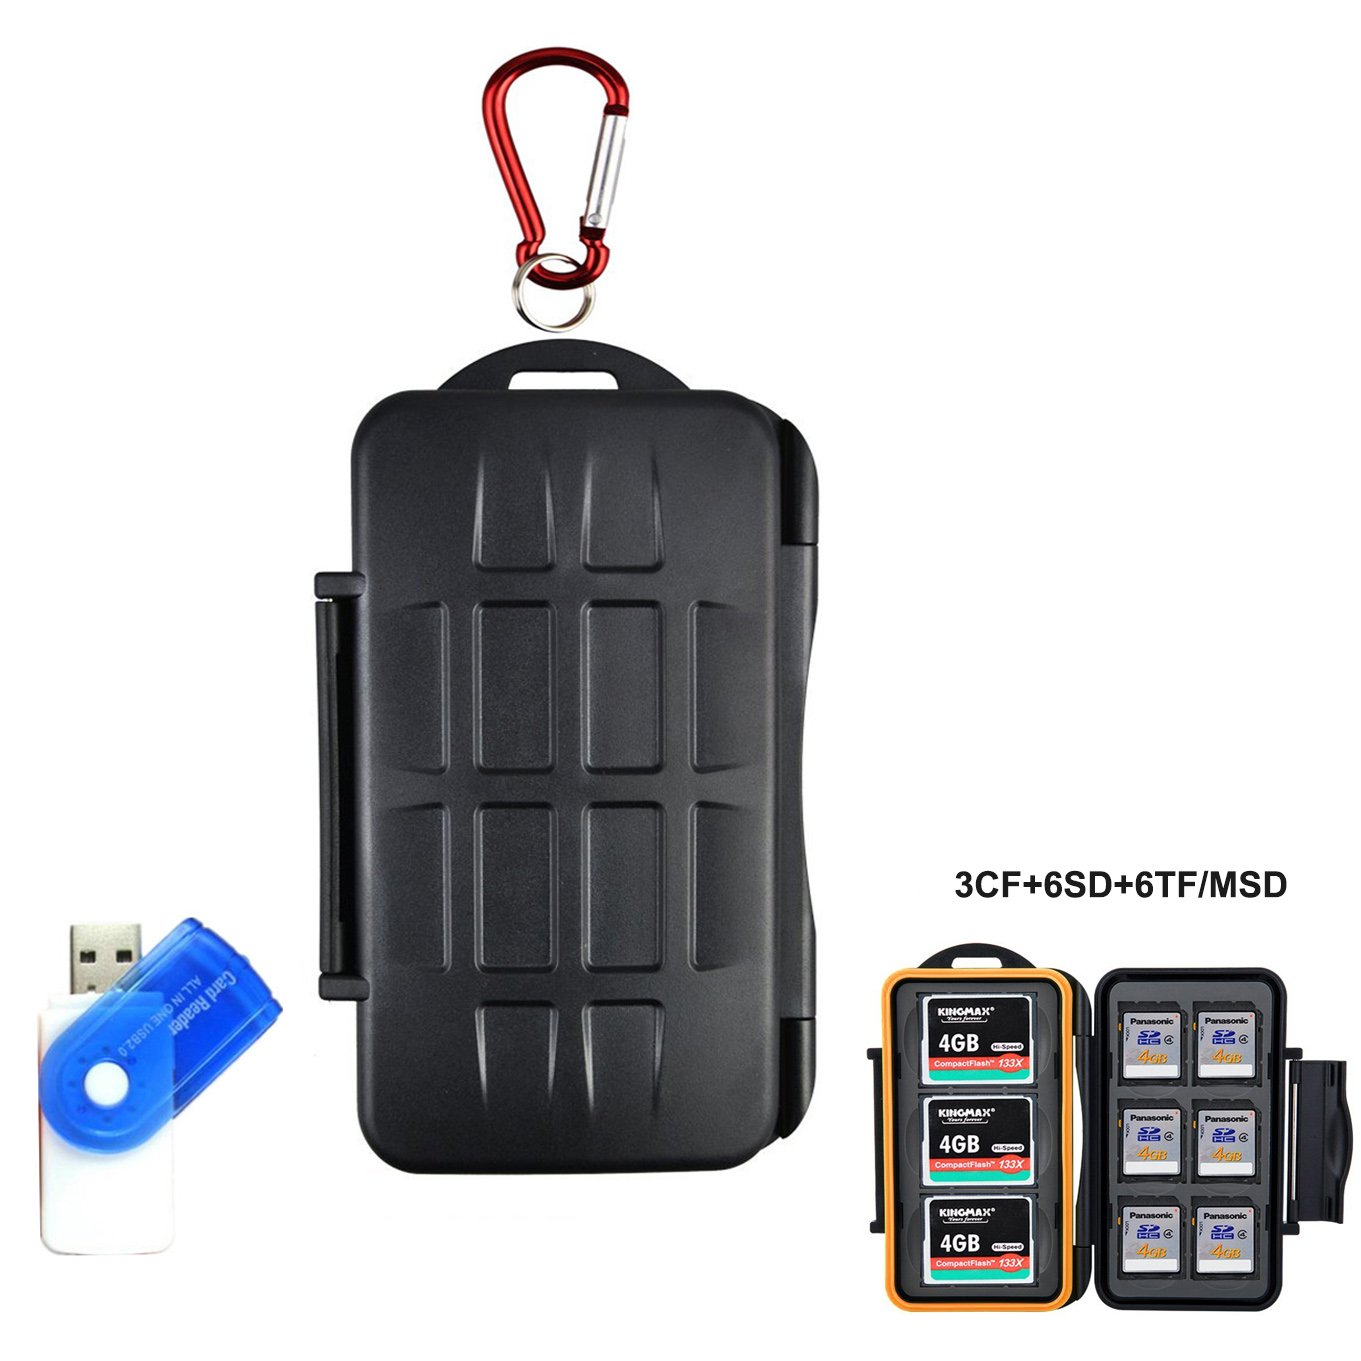 LXH 15 Slots Anti-shock Waterproof Hard Storage Memory Card Case Holder For SD card /CF( Compact Flash ) cards/ Micro SD cards with Carabiner & Card Reader ( For 3CF+6SD+6TF)